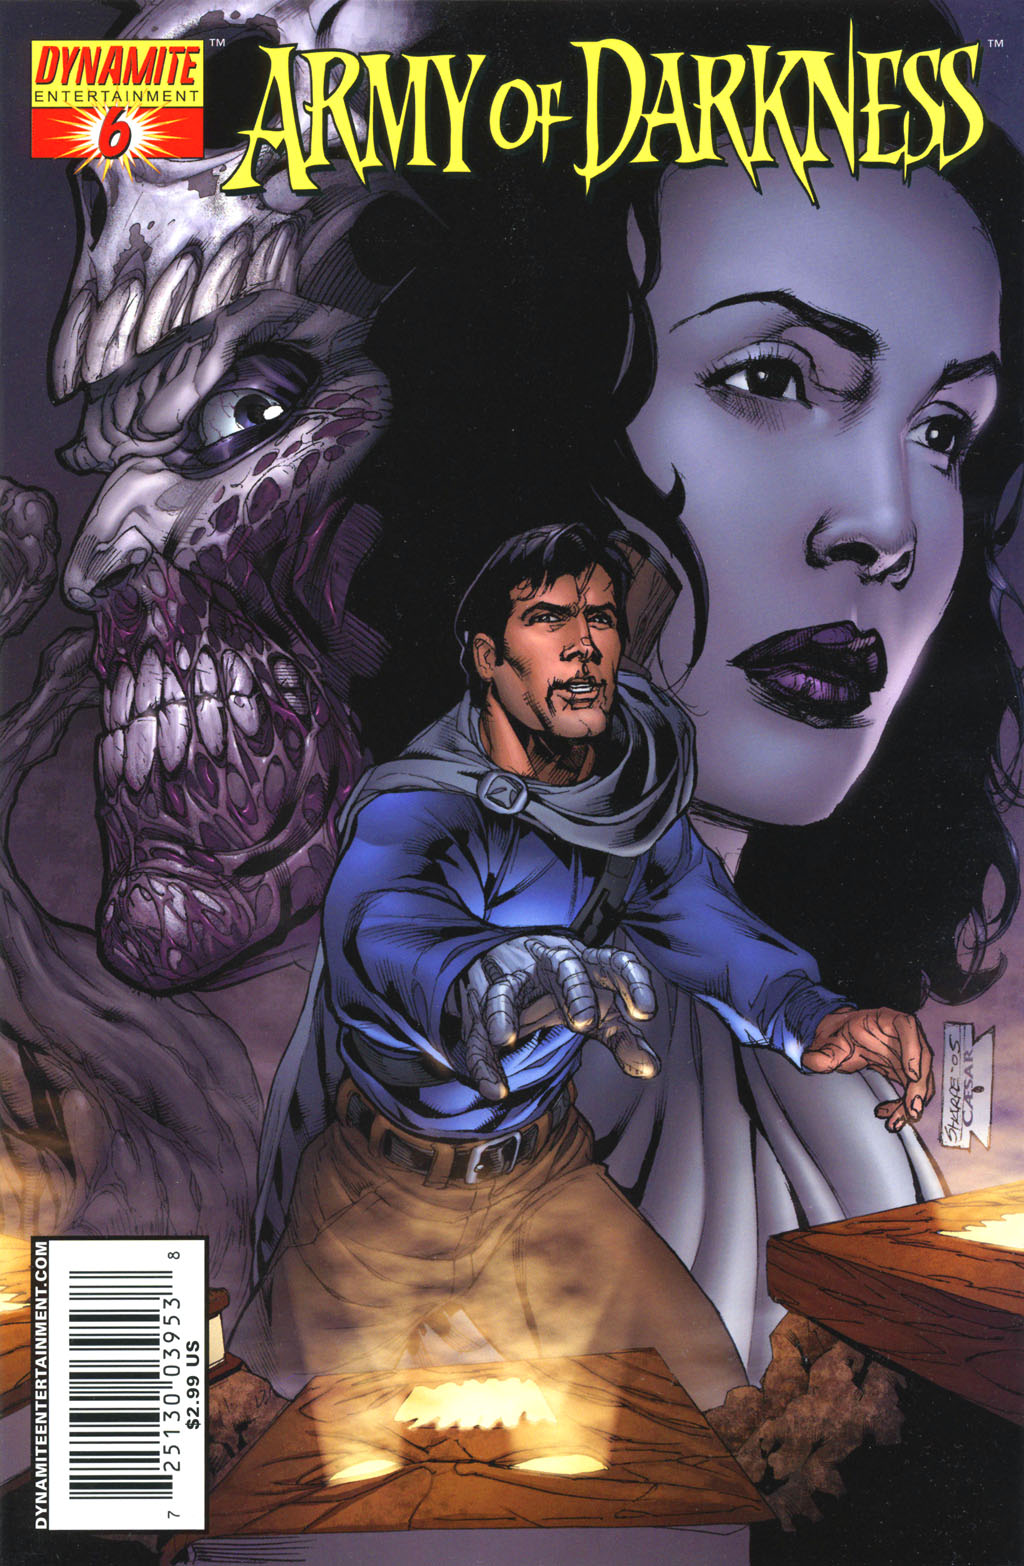 Army of Darkness (2006) Issue #6 #2 - English 1